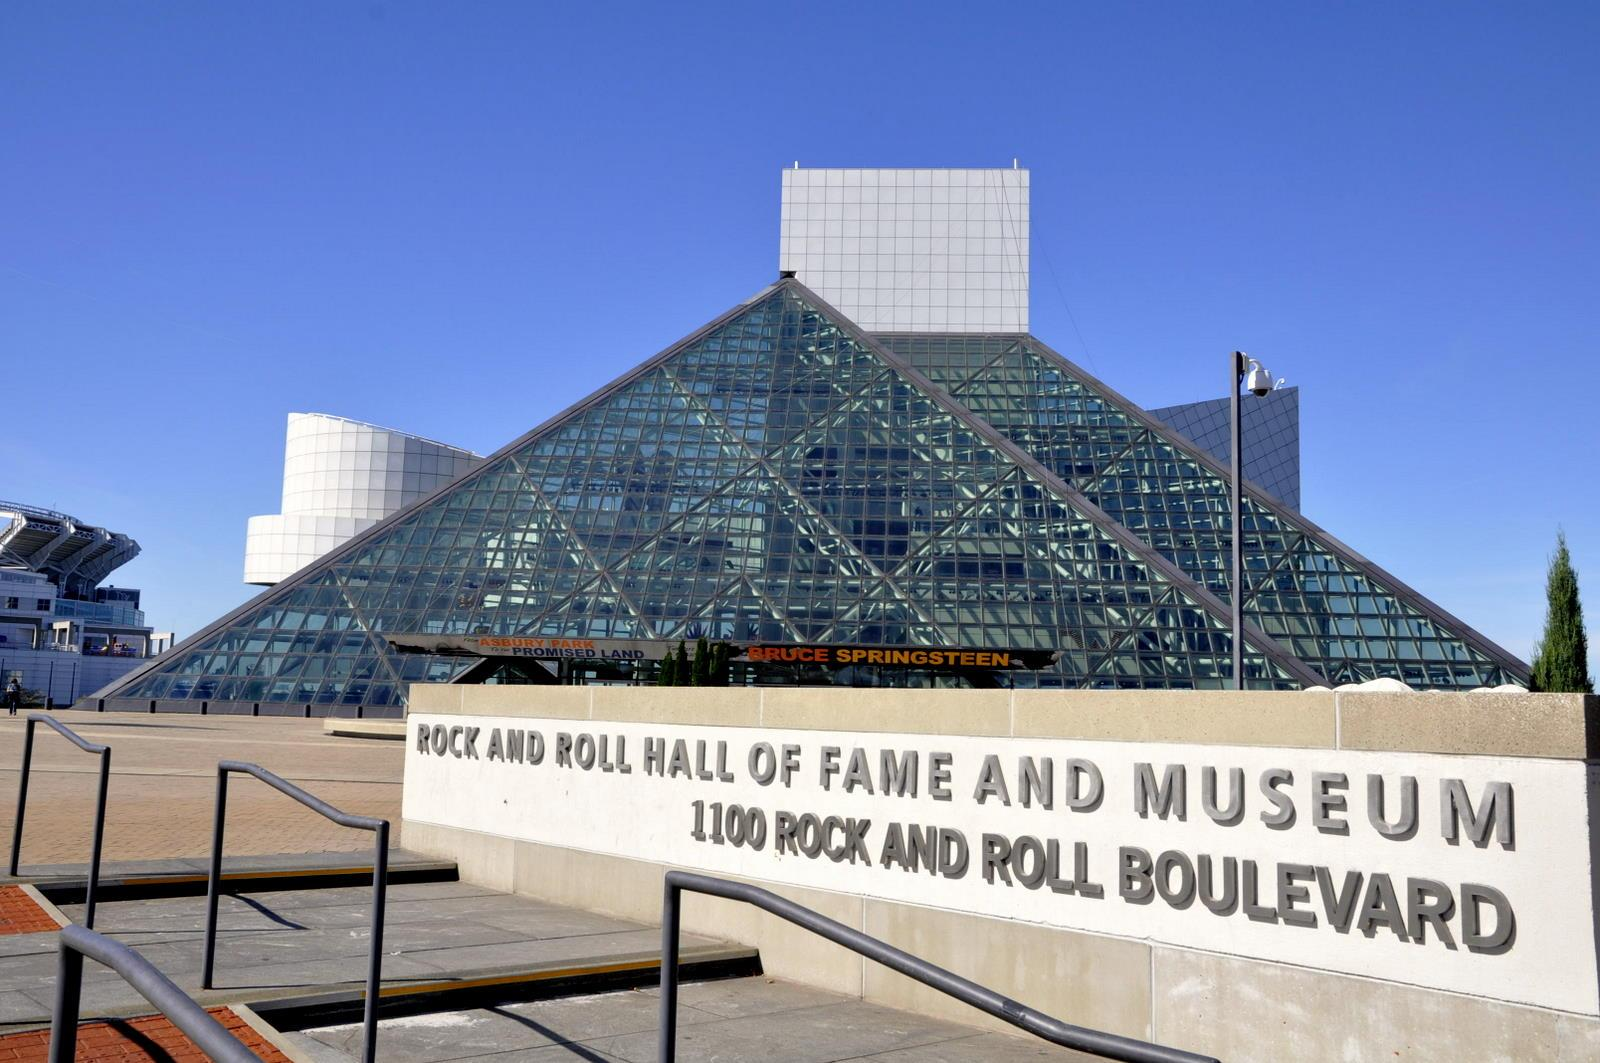 Memória do Rock, 24/02/2018 - Rock and Roll Hall of Fame